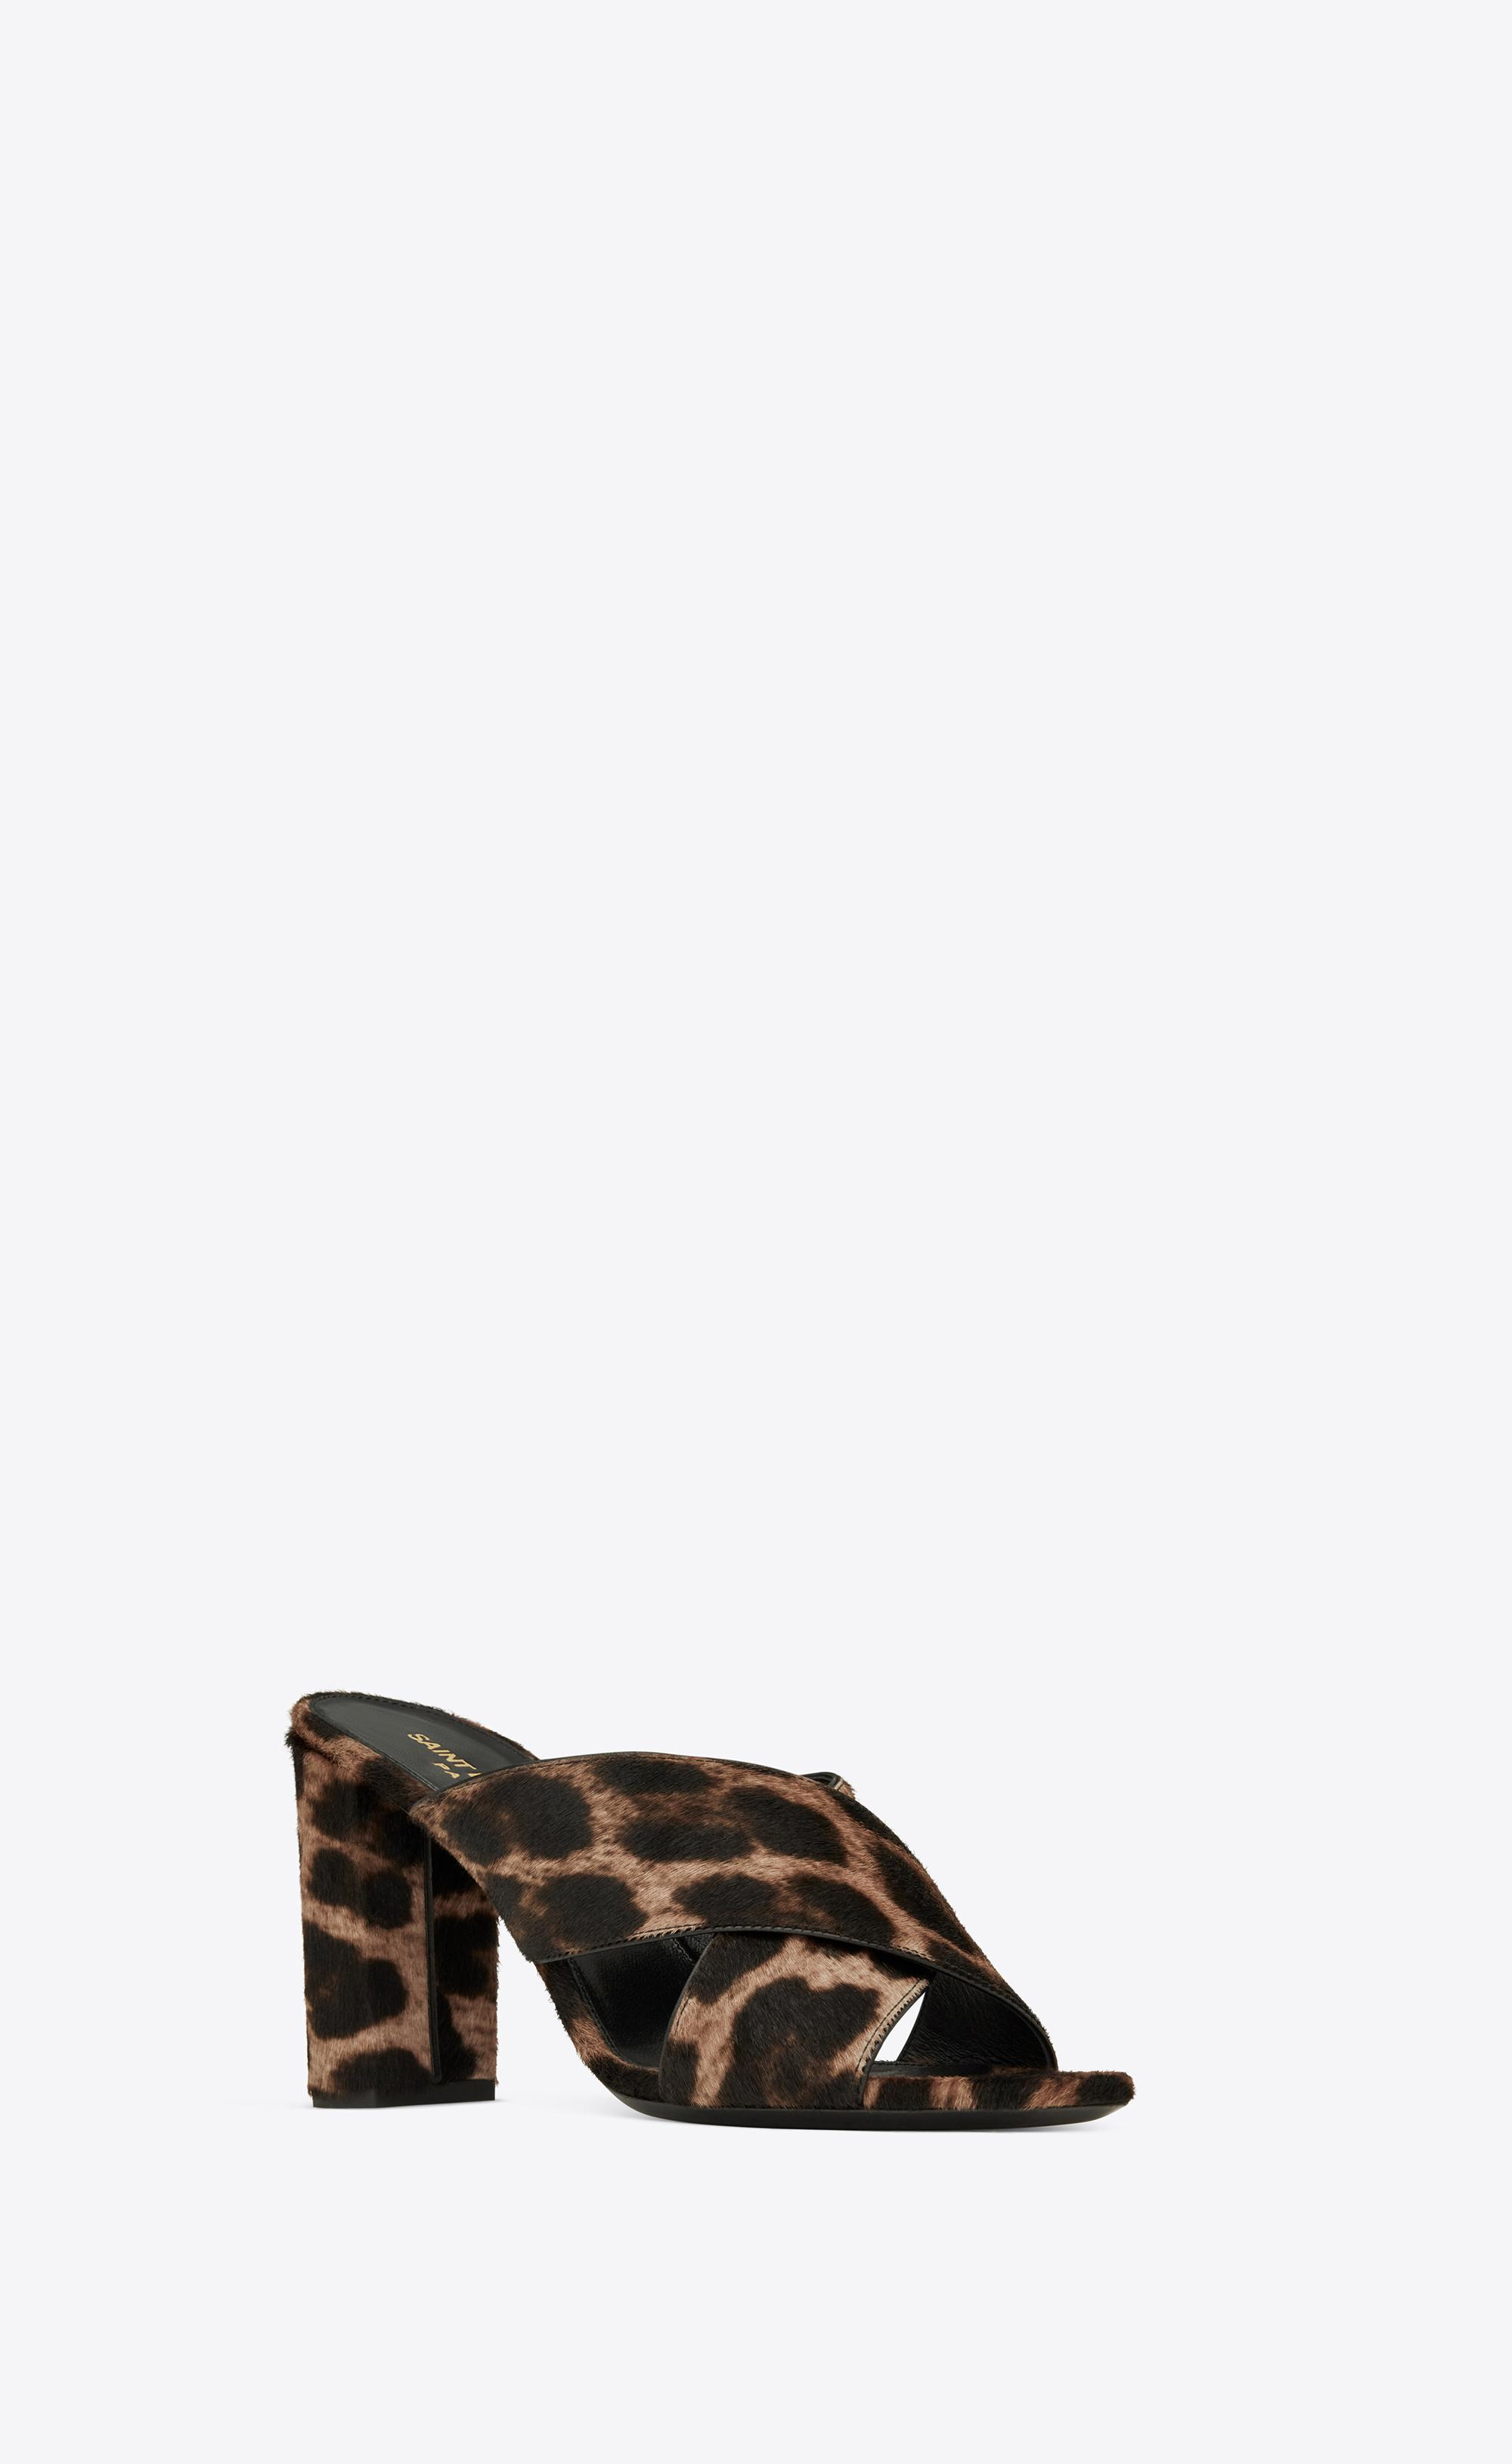 71f9007b12 Saint Laurent Loulou Mule In Leopard Printed Pony Effect Leather in ...